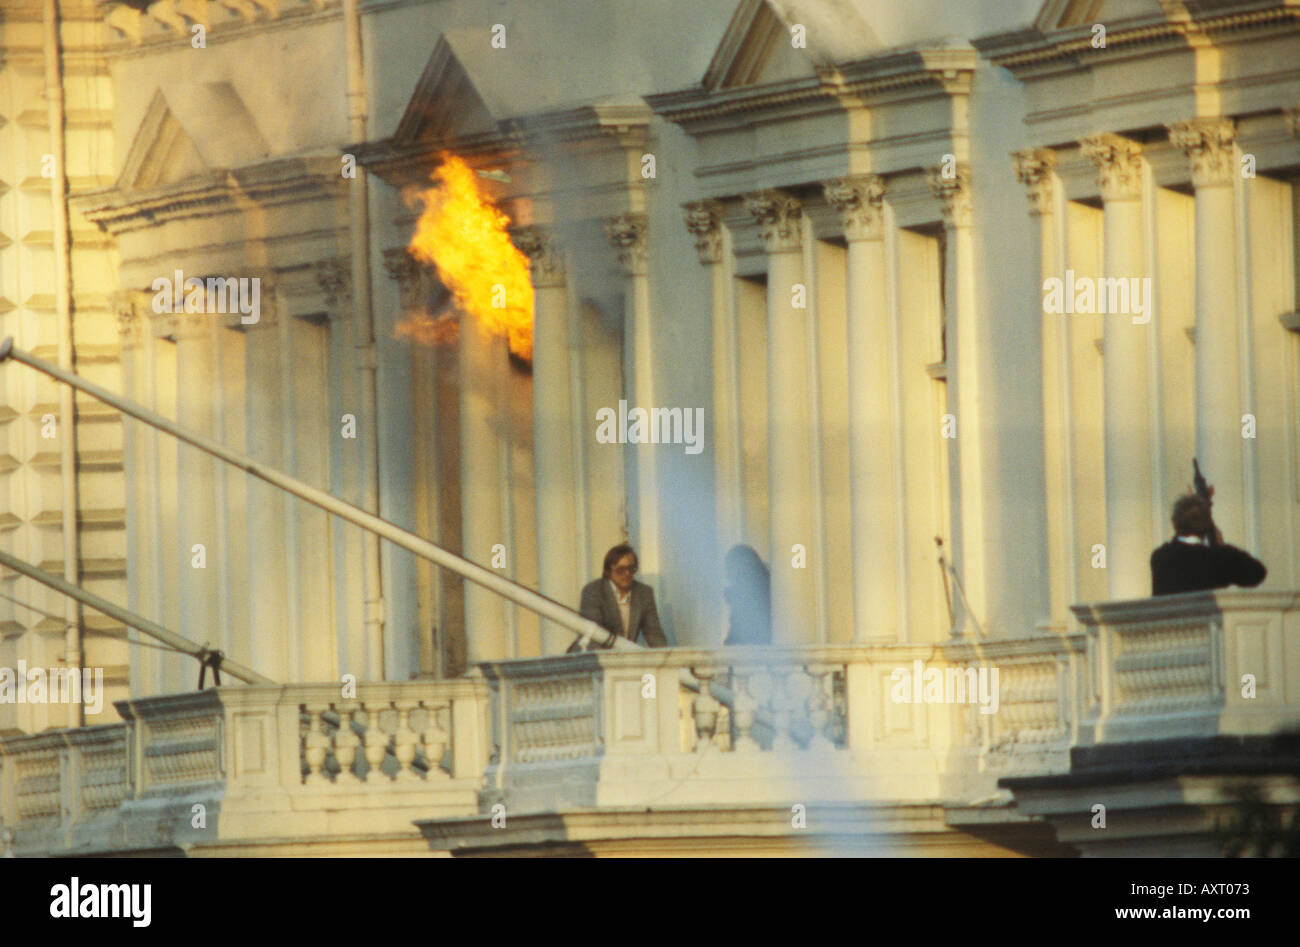 Iranian Embassy siege May 5th 1980 London UK HOMER SYKES - Stock Image